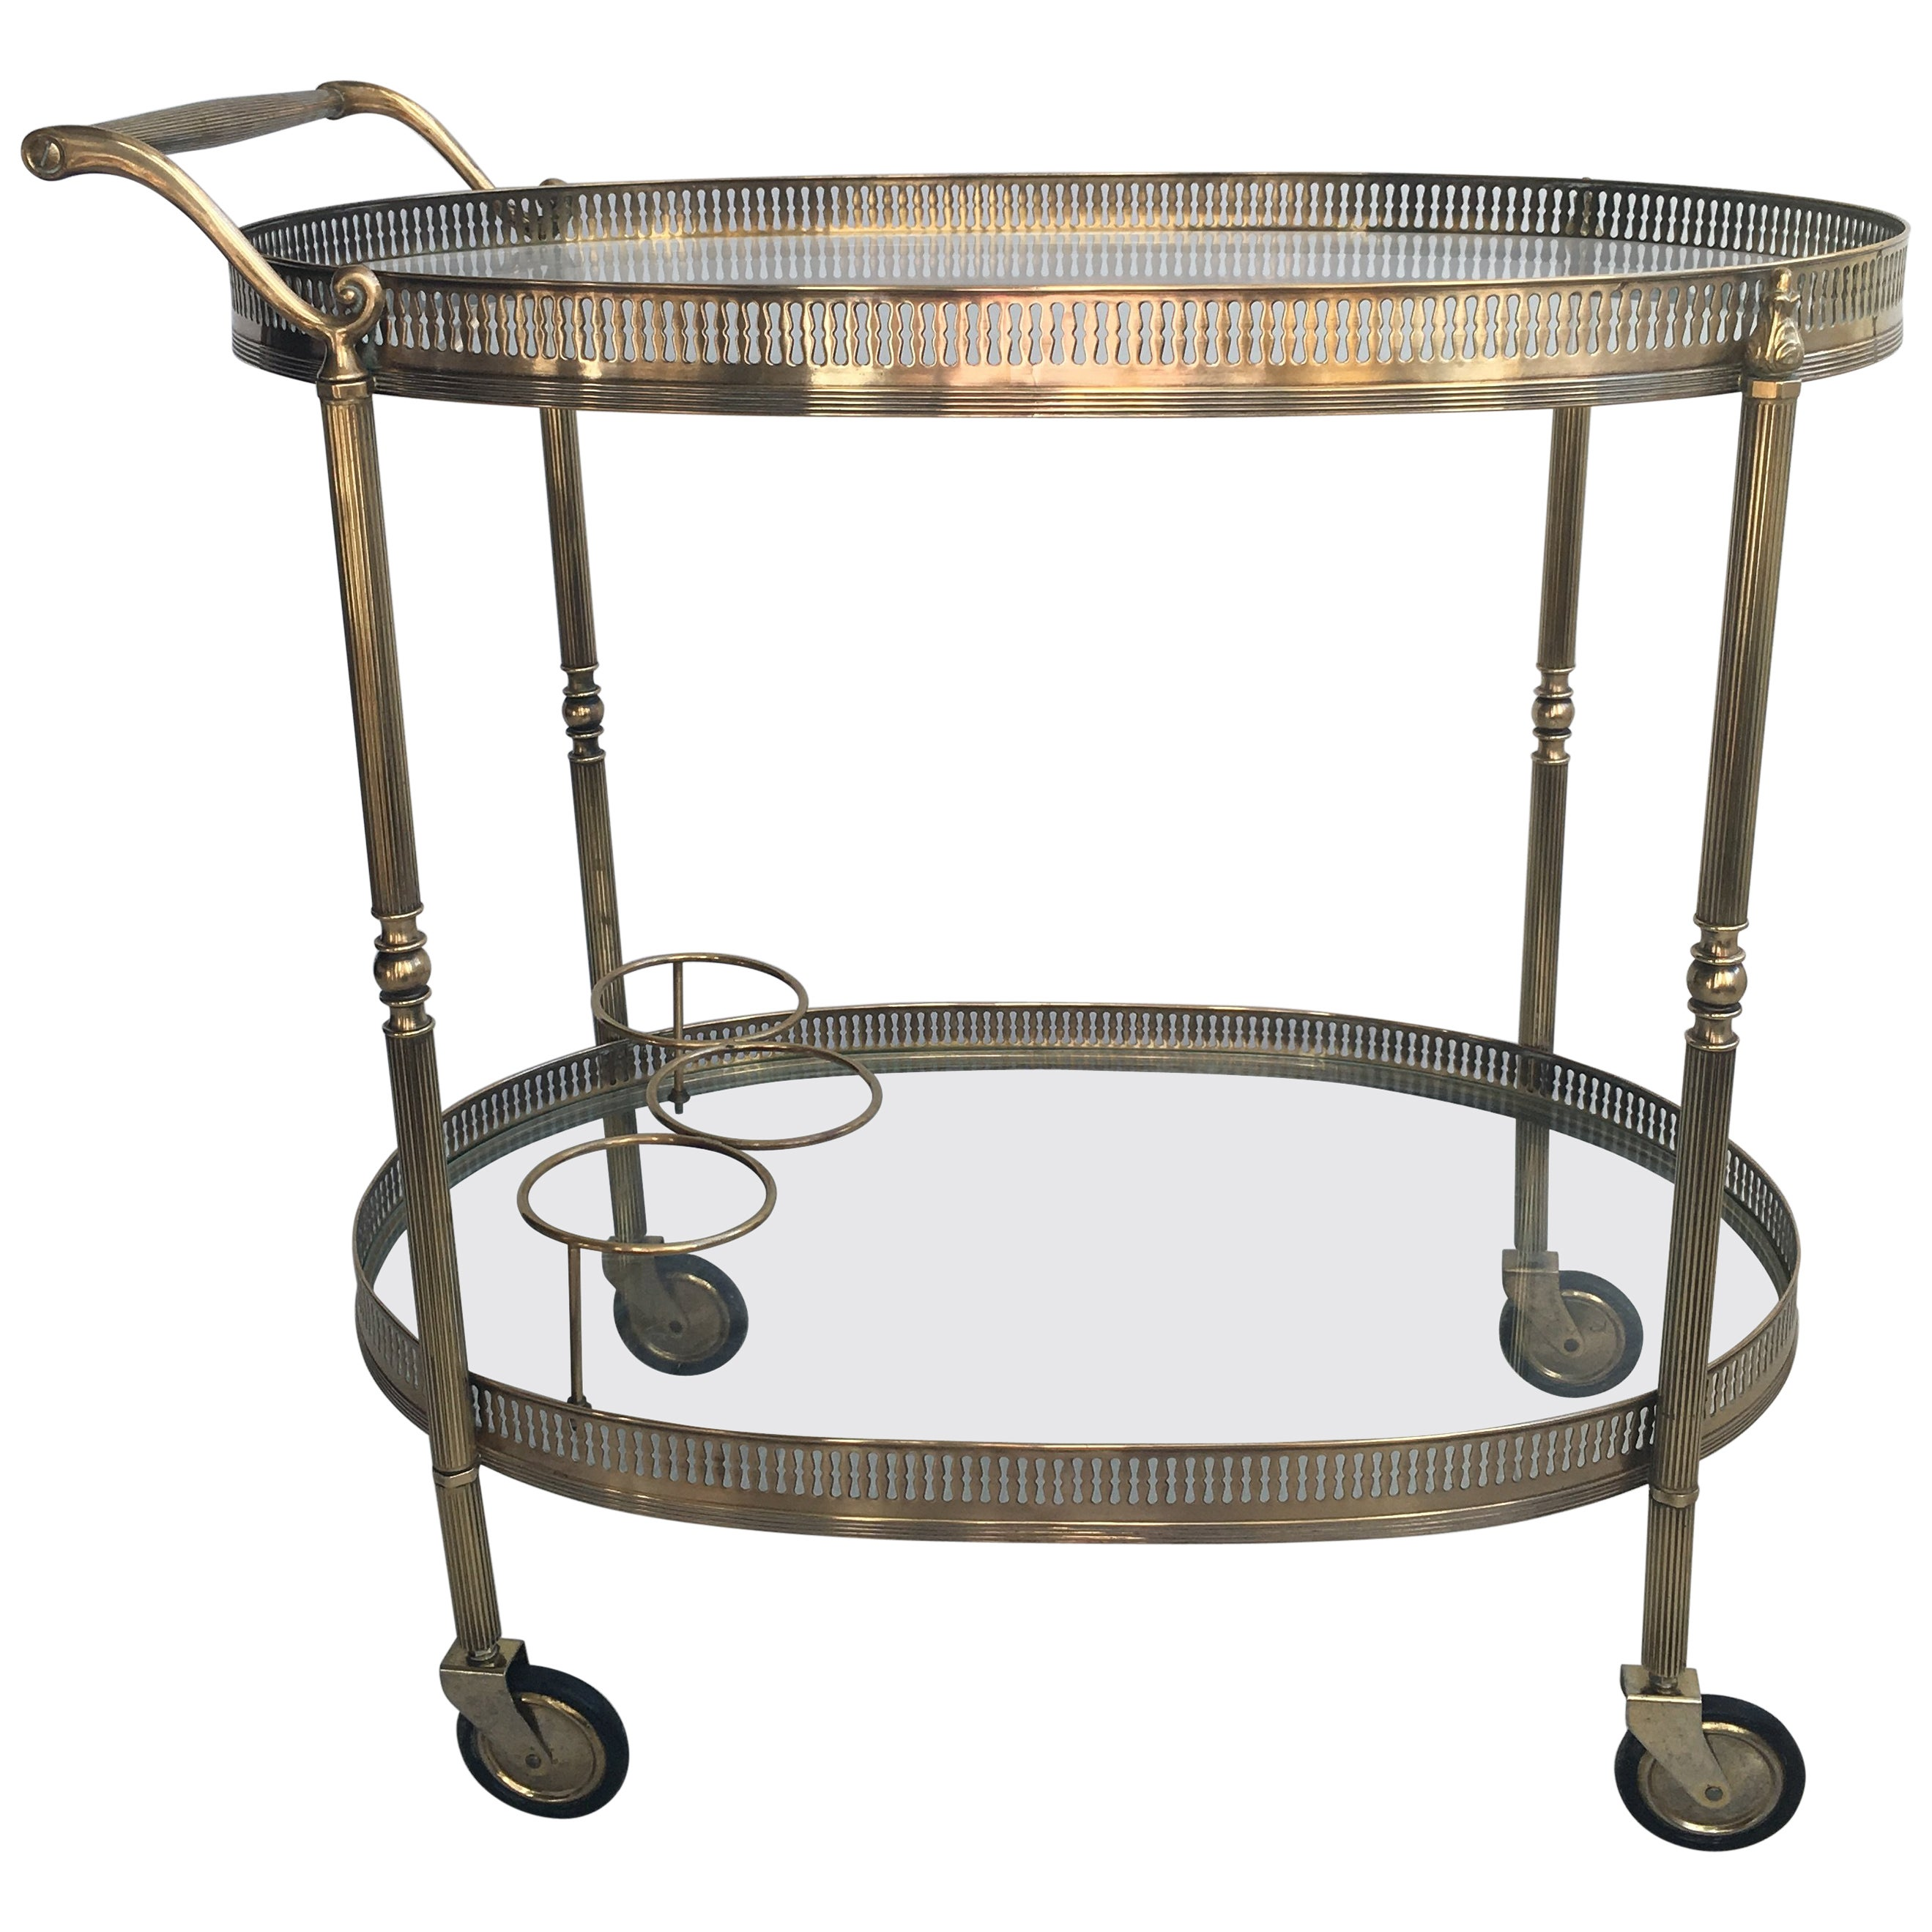 A Frame Trolley Vintage French Brass Oval Drinks Trolley Or Bar Cart